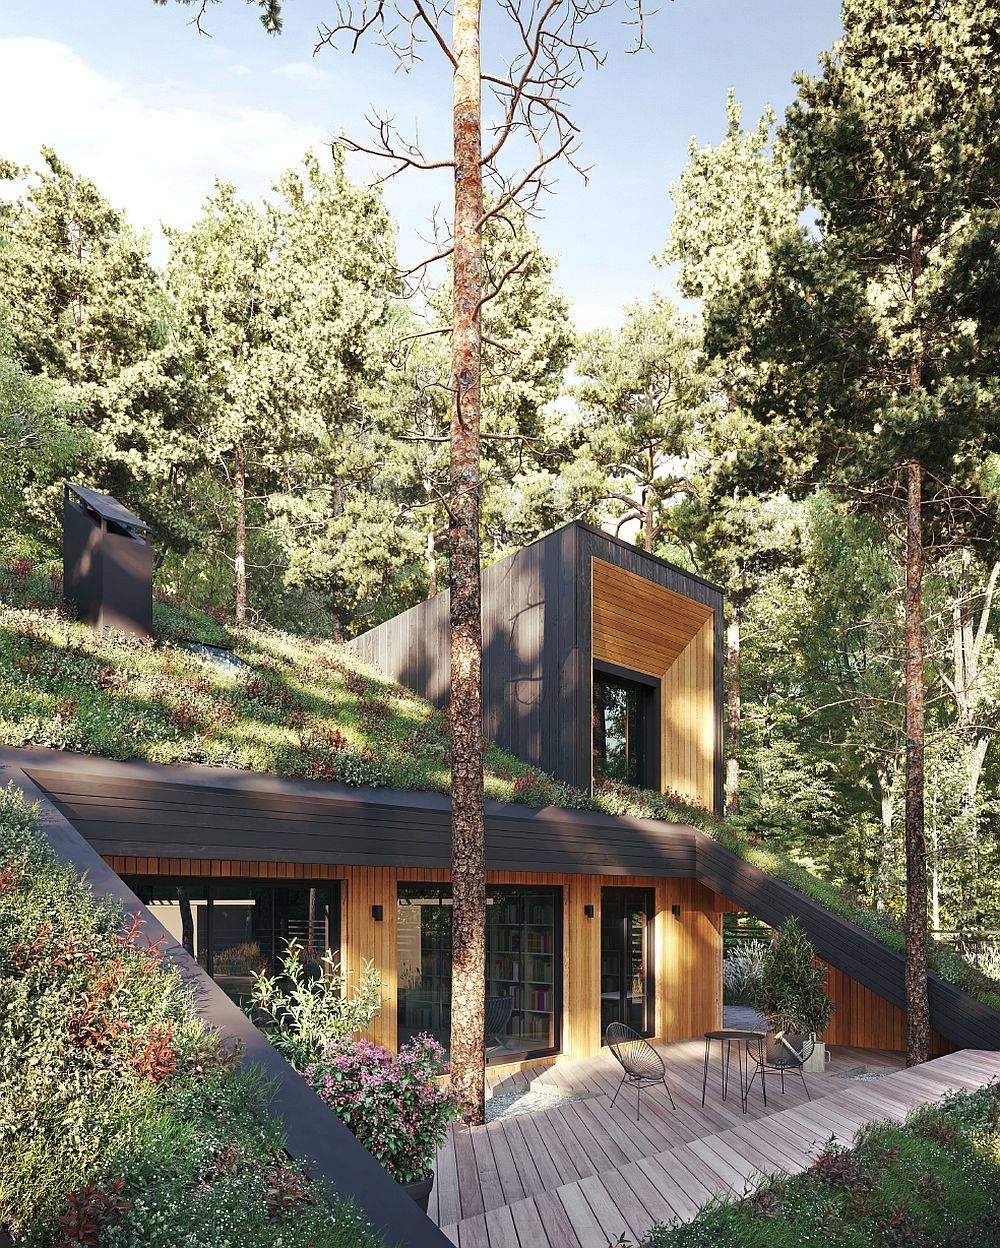 Small outdoor wooden deck of the green home with a fabulous live roof